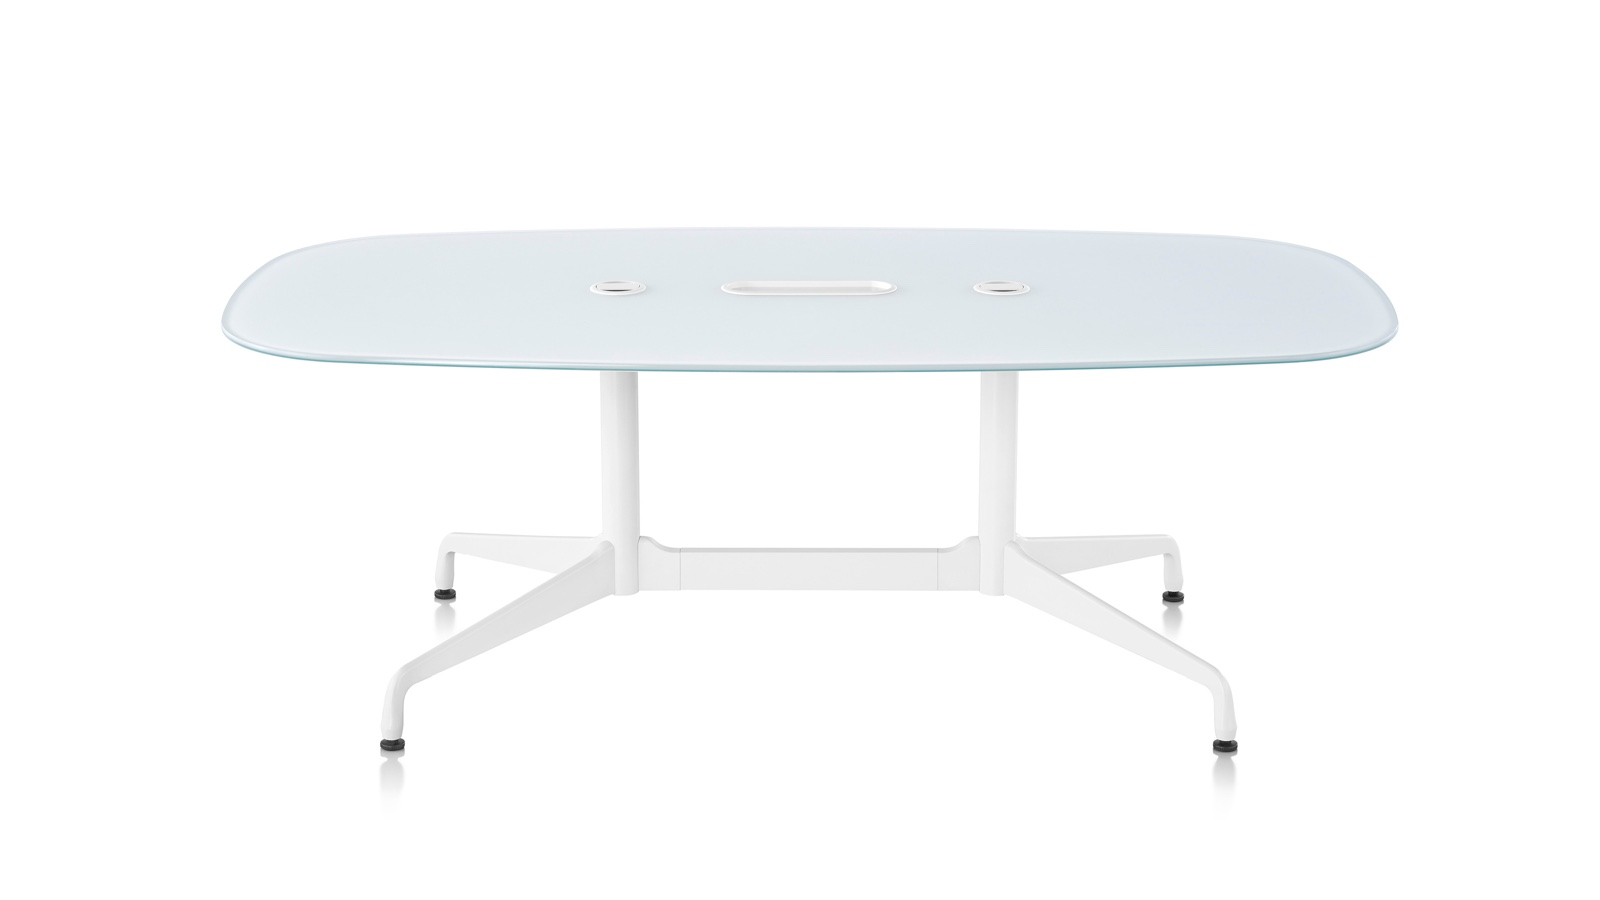 White sweep image of an Eames Standing-Height Table with oval top.